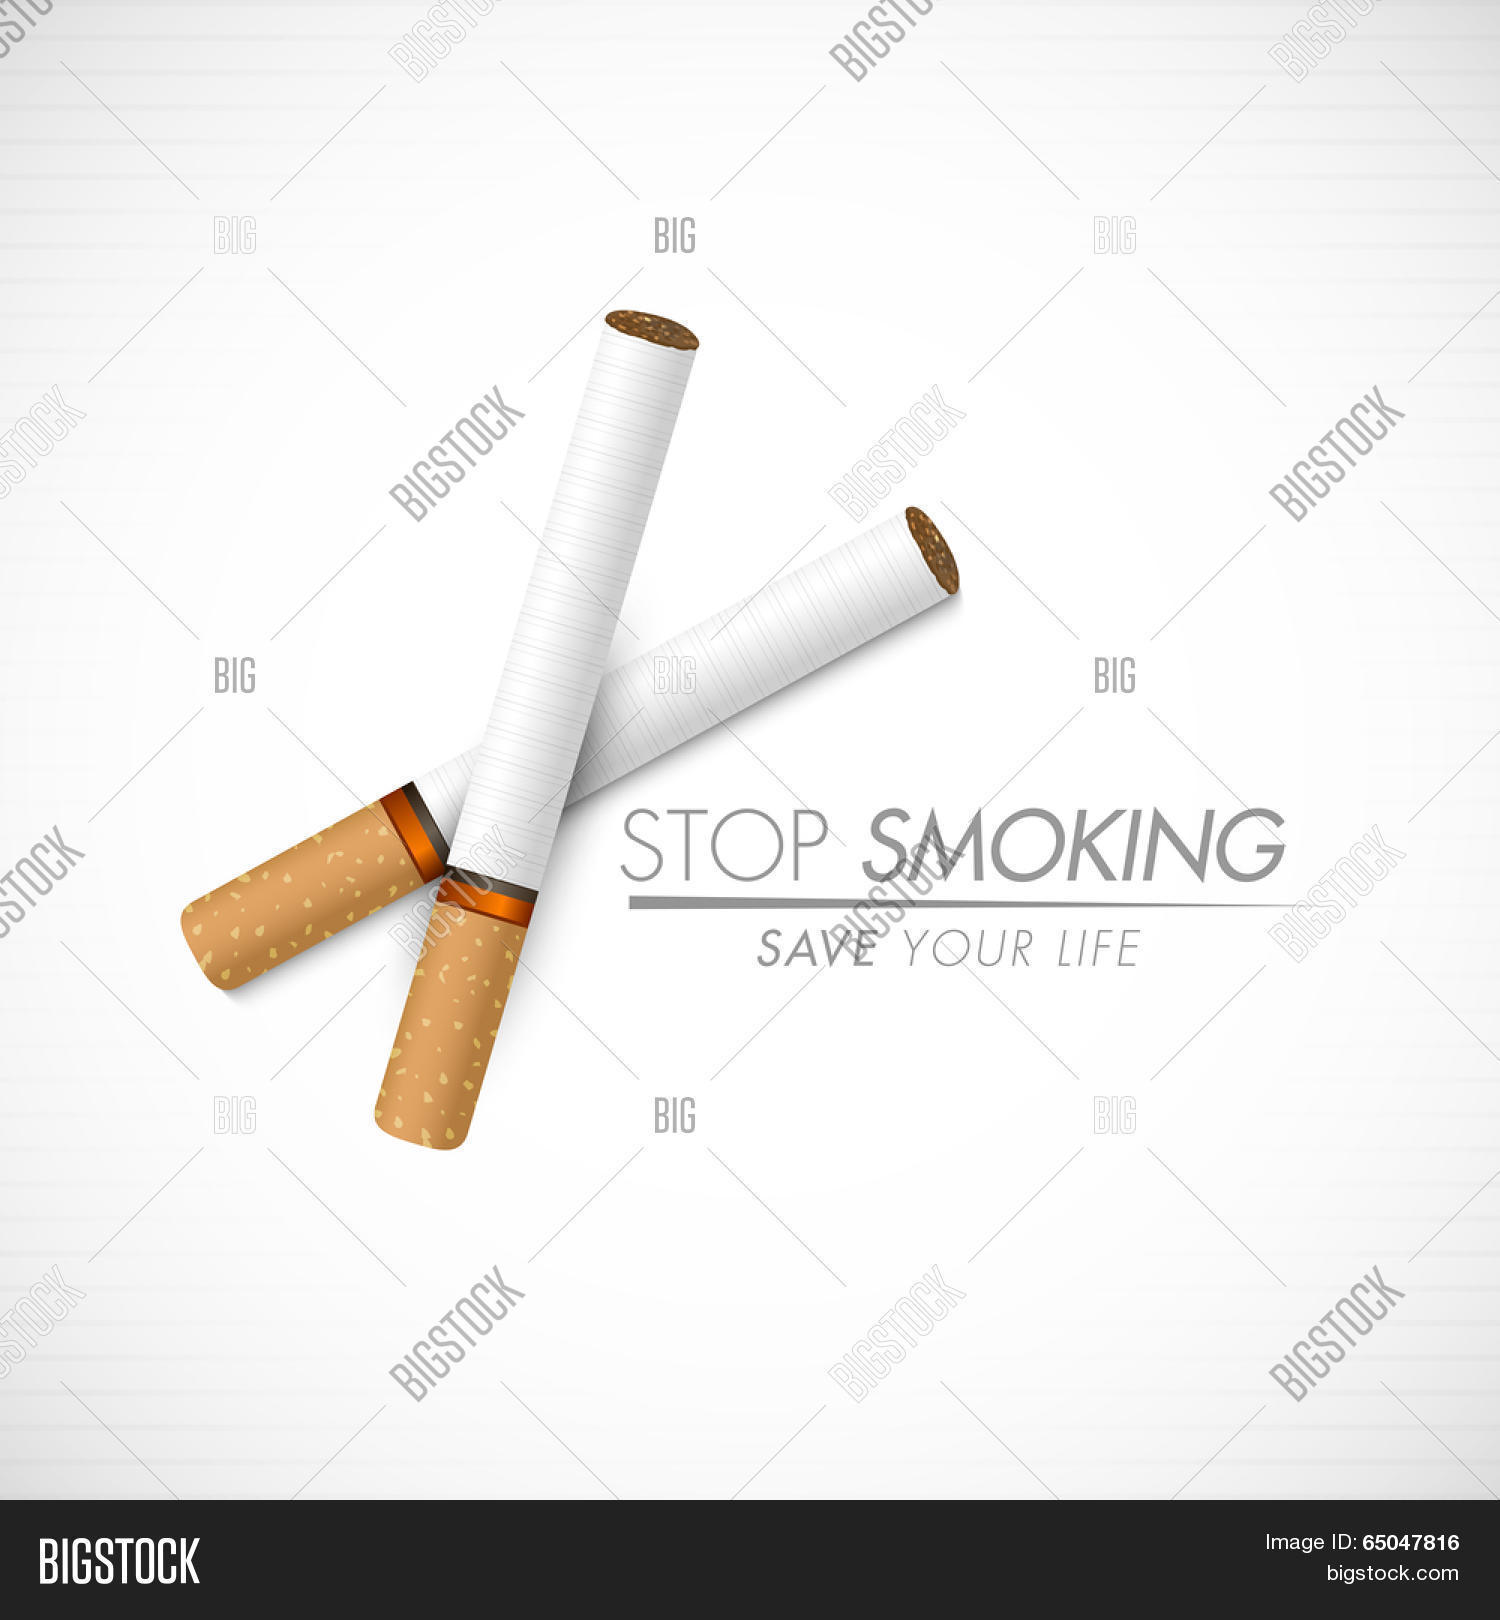 Poster Banner Or Flyer Design For World No Tobacco Day With Cigarettes And Stylish Text Stop Smokin 65047816 Image Stock Photo